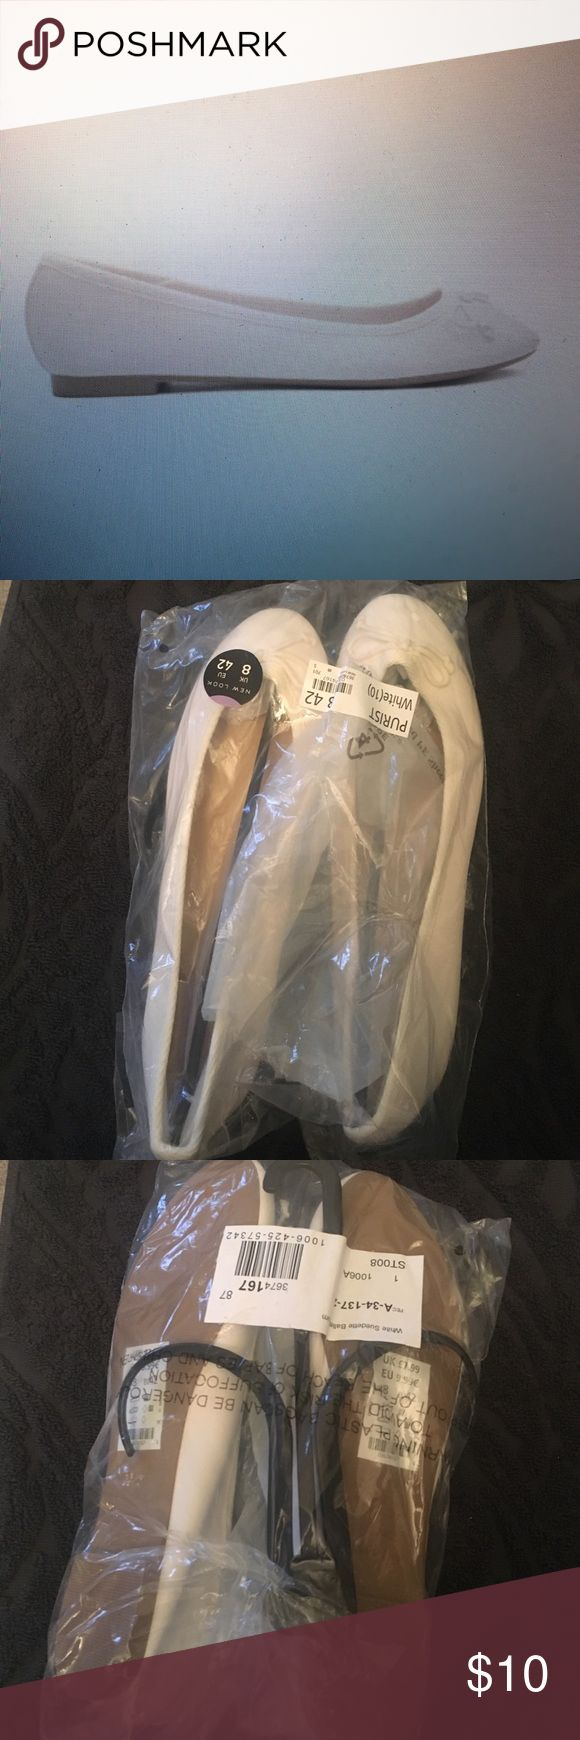 New Look white ballet flats Brand new, still in package from UK retailer New Look. Super comfy! New Look Shoes Flats & Loafers